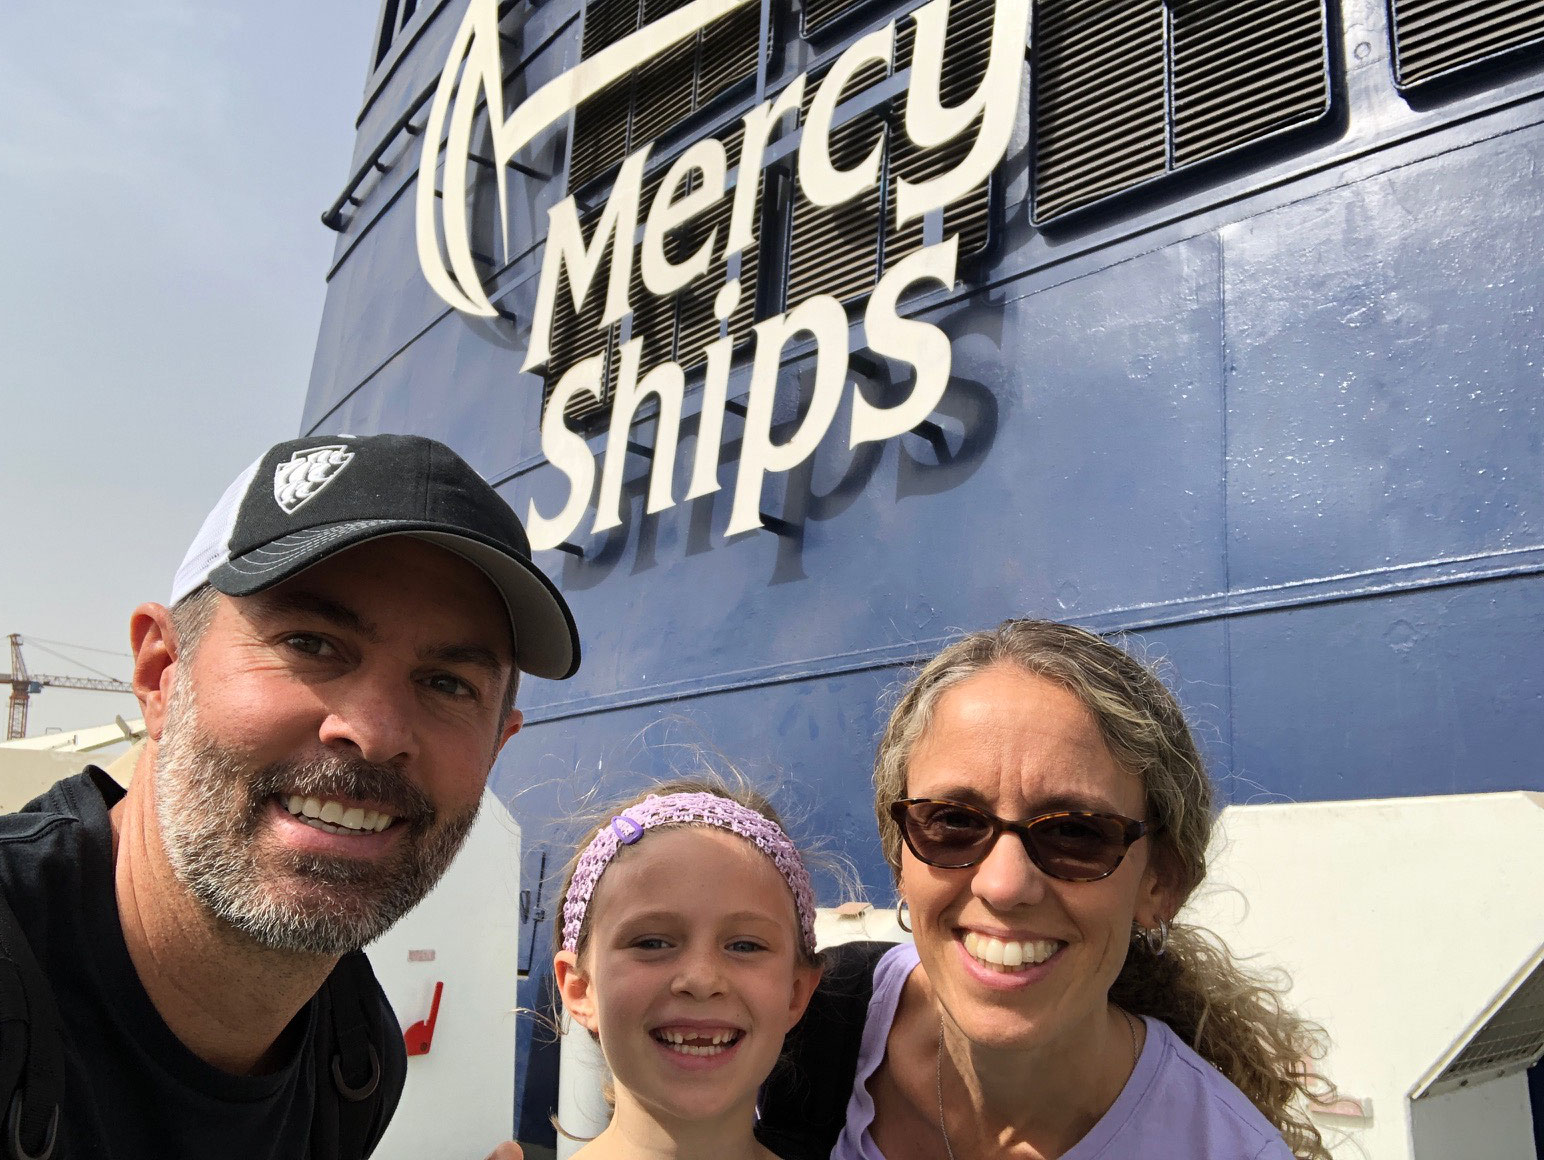 visiting the mercy ship in dakar